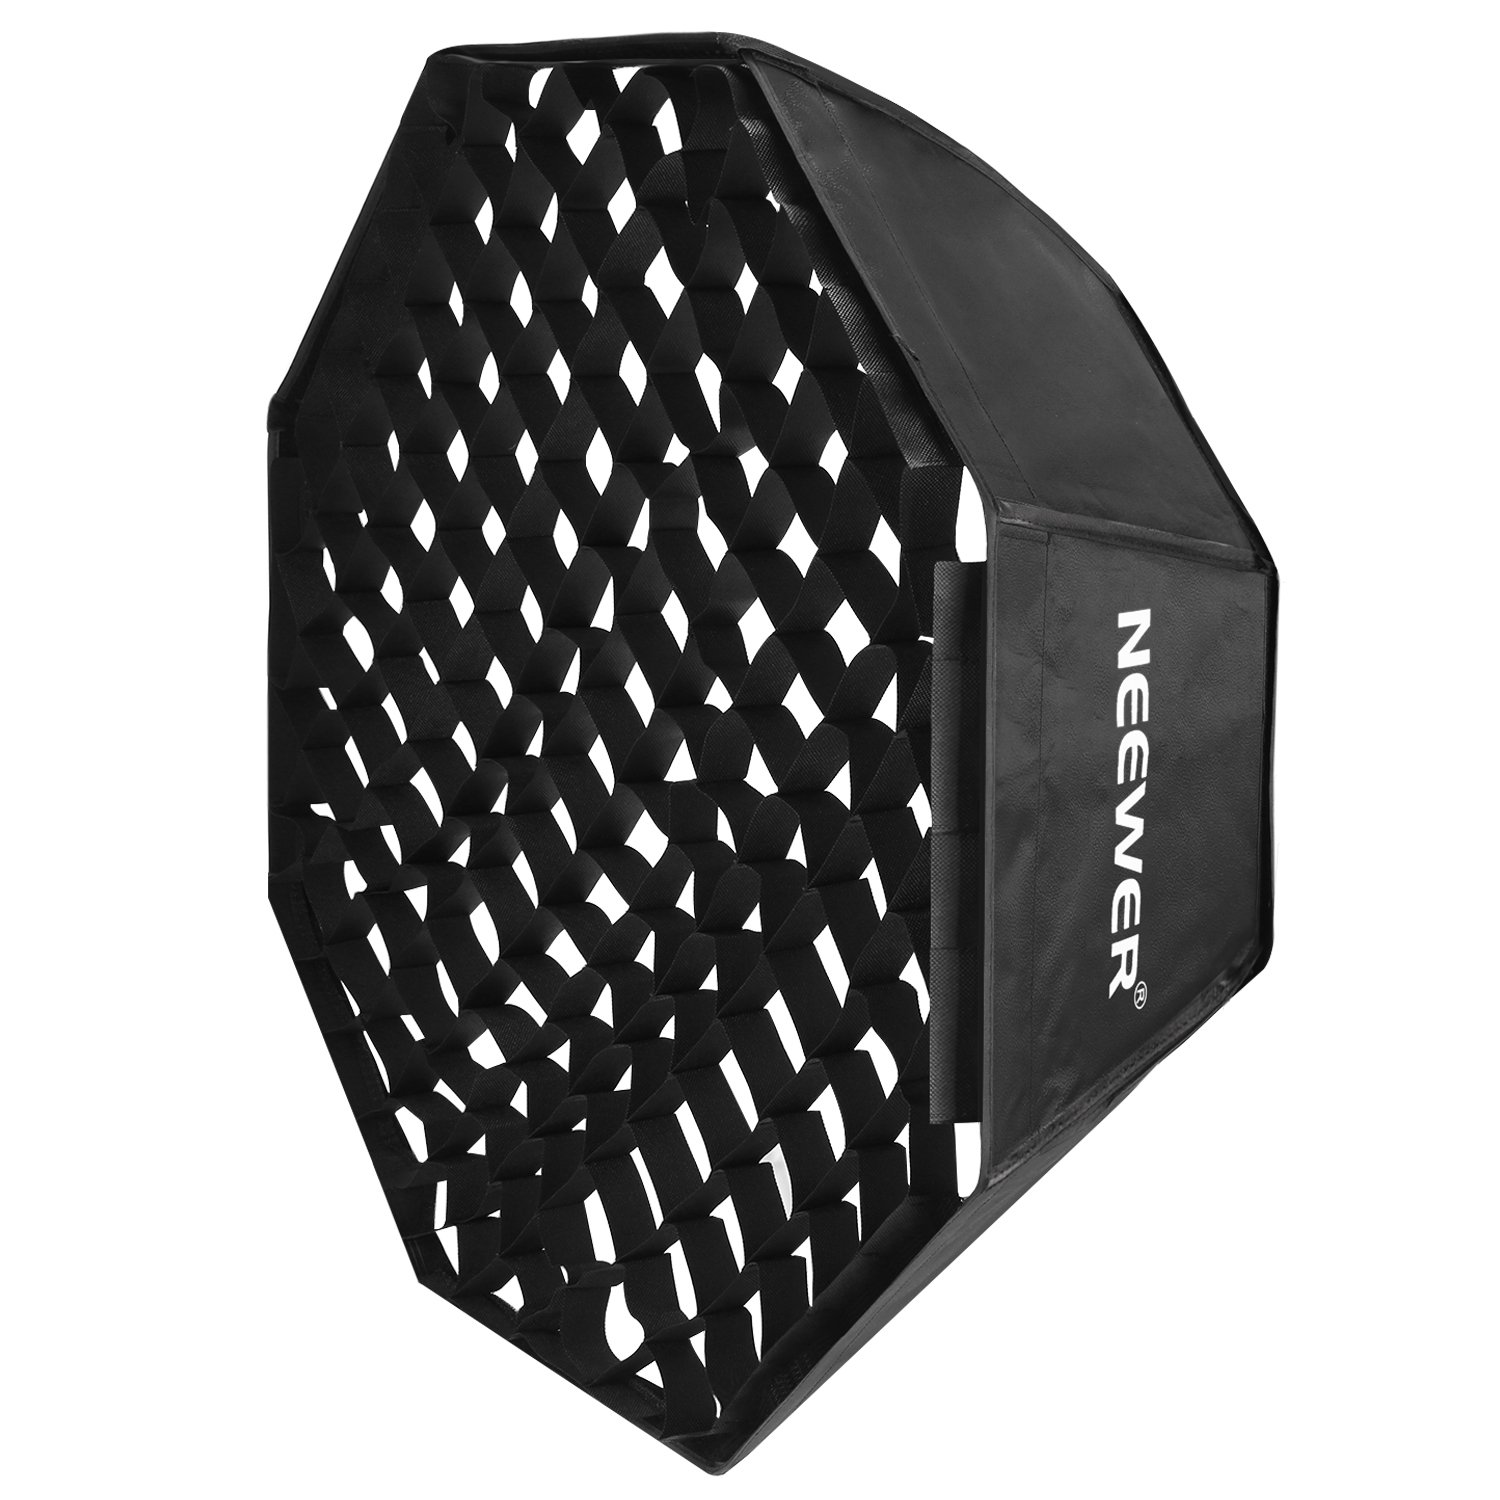 Neewer 32 x 32/80cm x 80cm Grid Octagon Umbrella Speedlite..